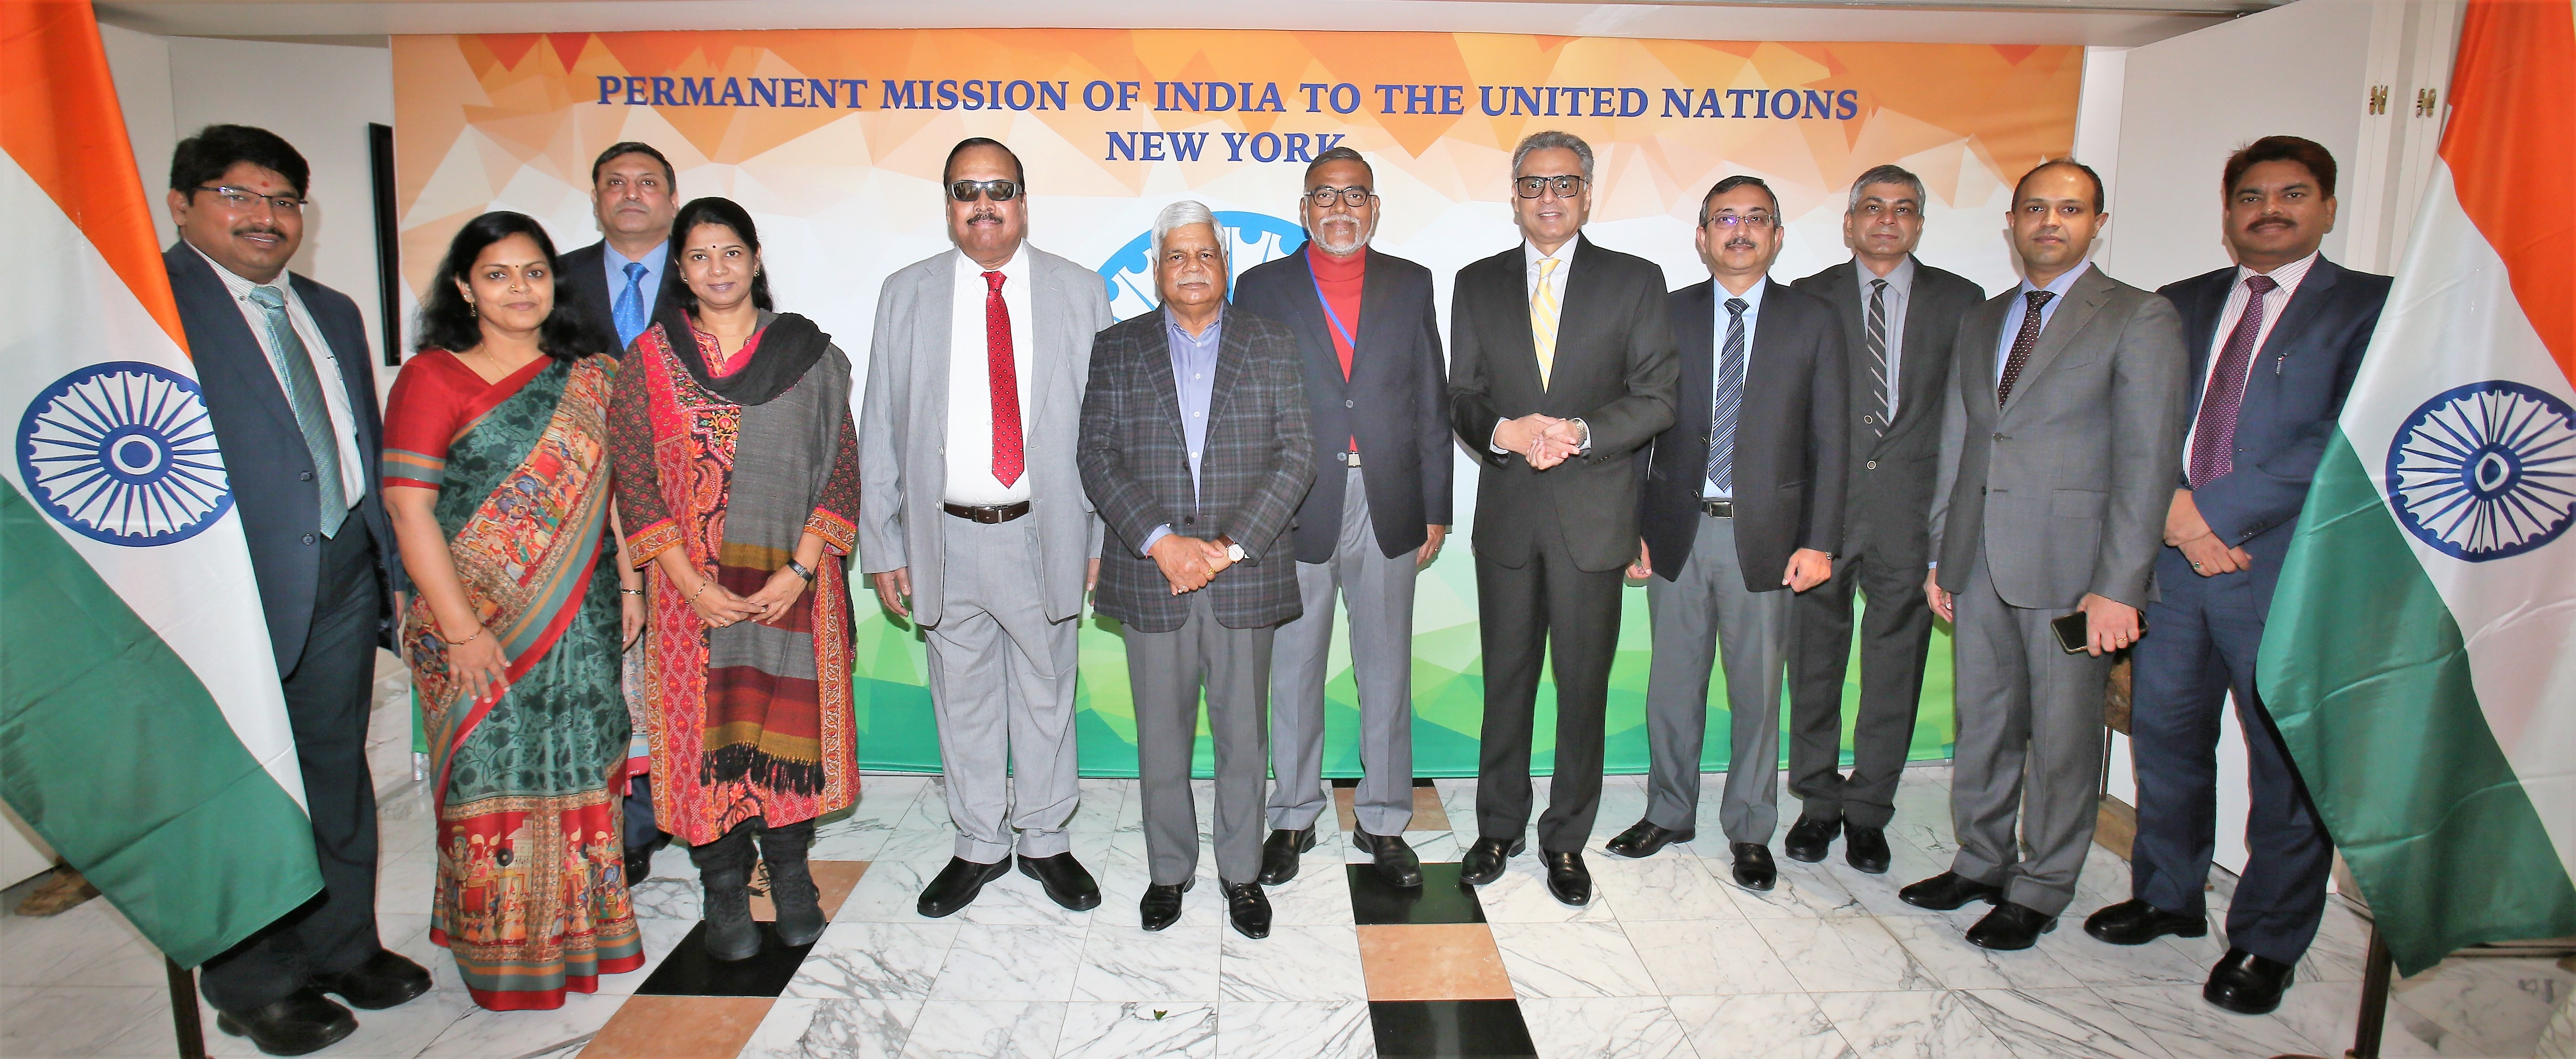 Delegation of Members of Parliament interact with Diplomats on UN issues